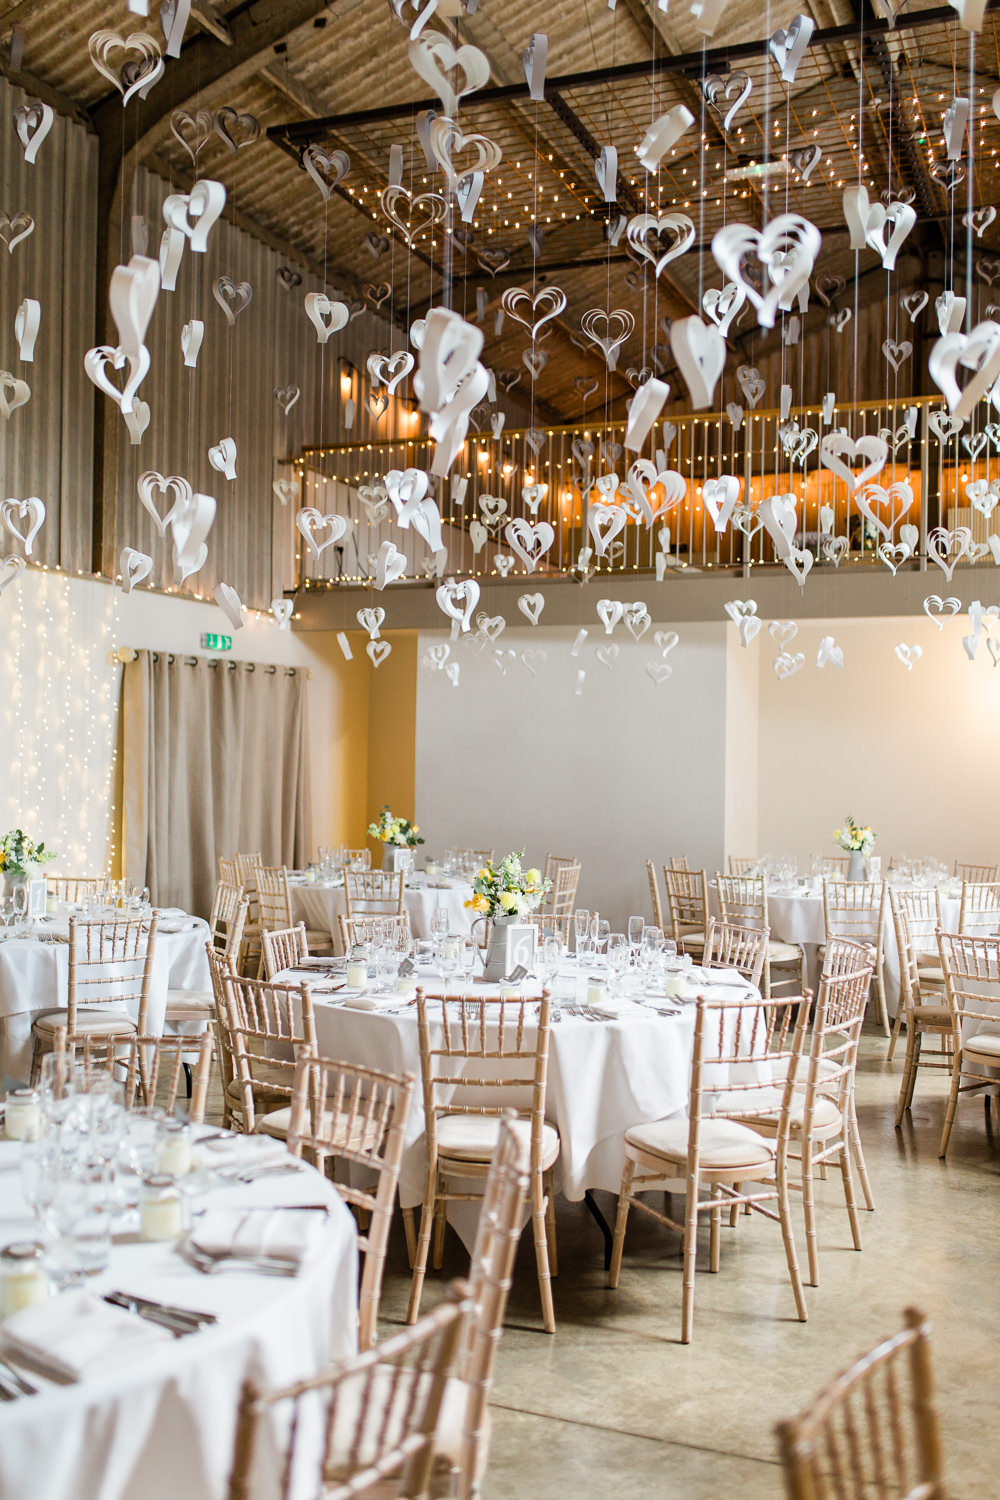 White Paper Heart Decor Hanging Creative Summer Wedding Gemma Giorgio Photography